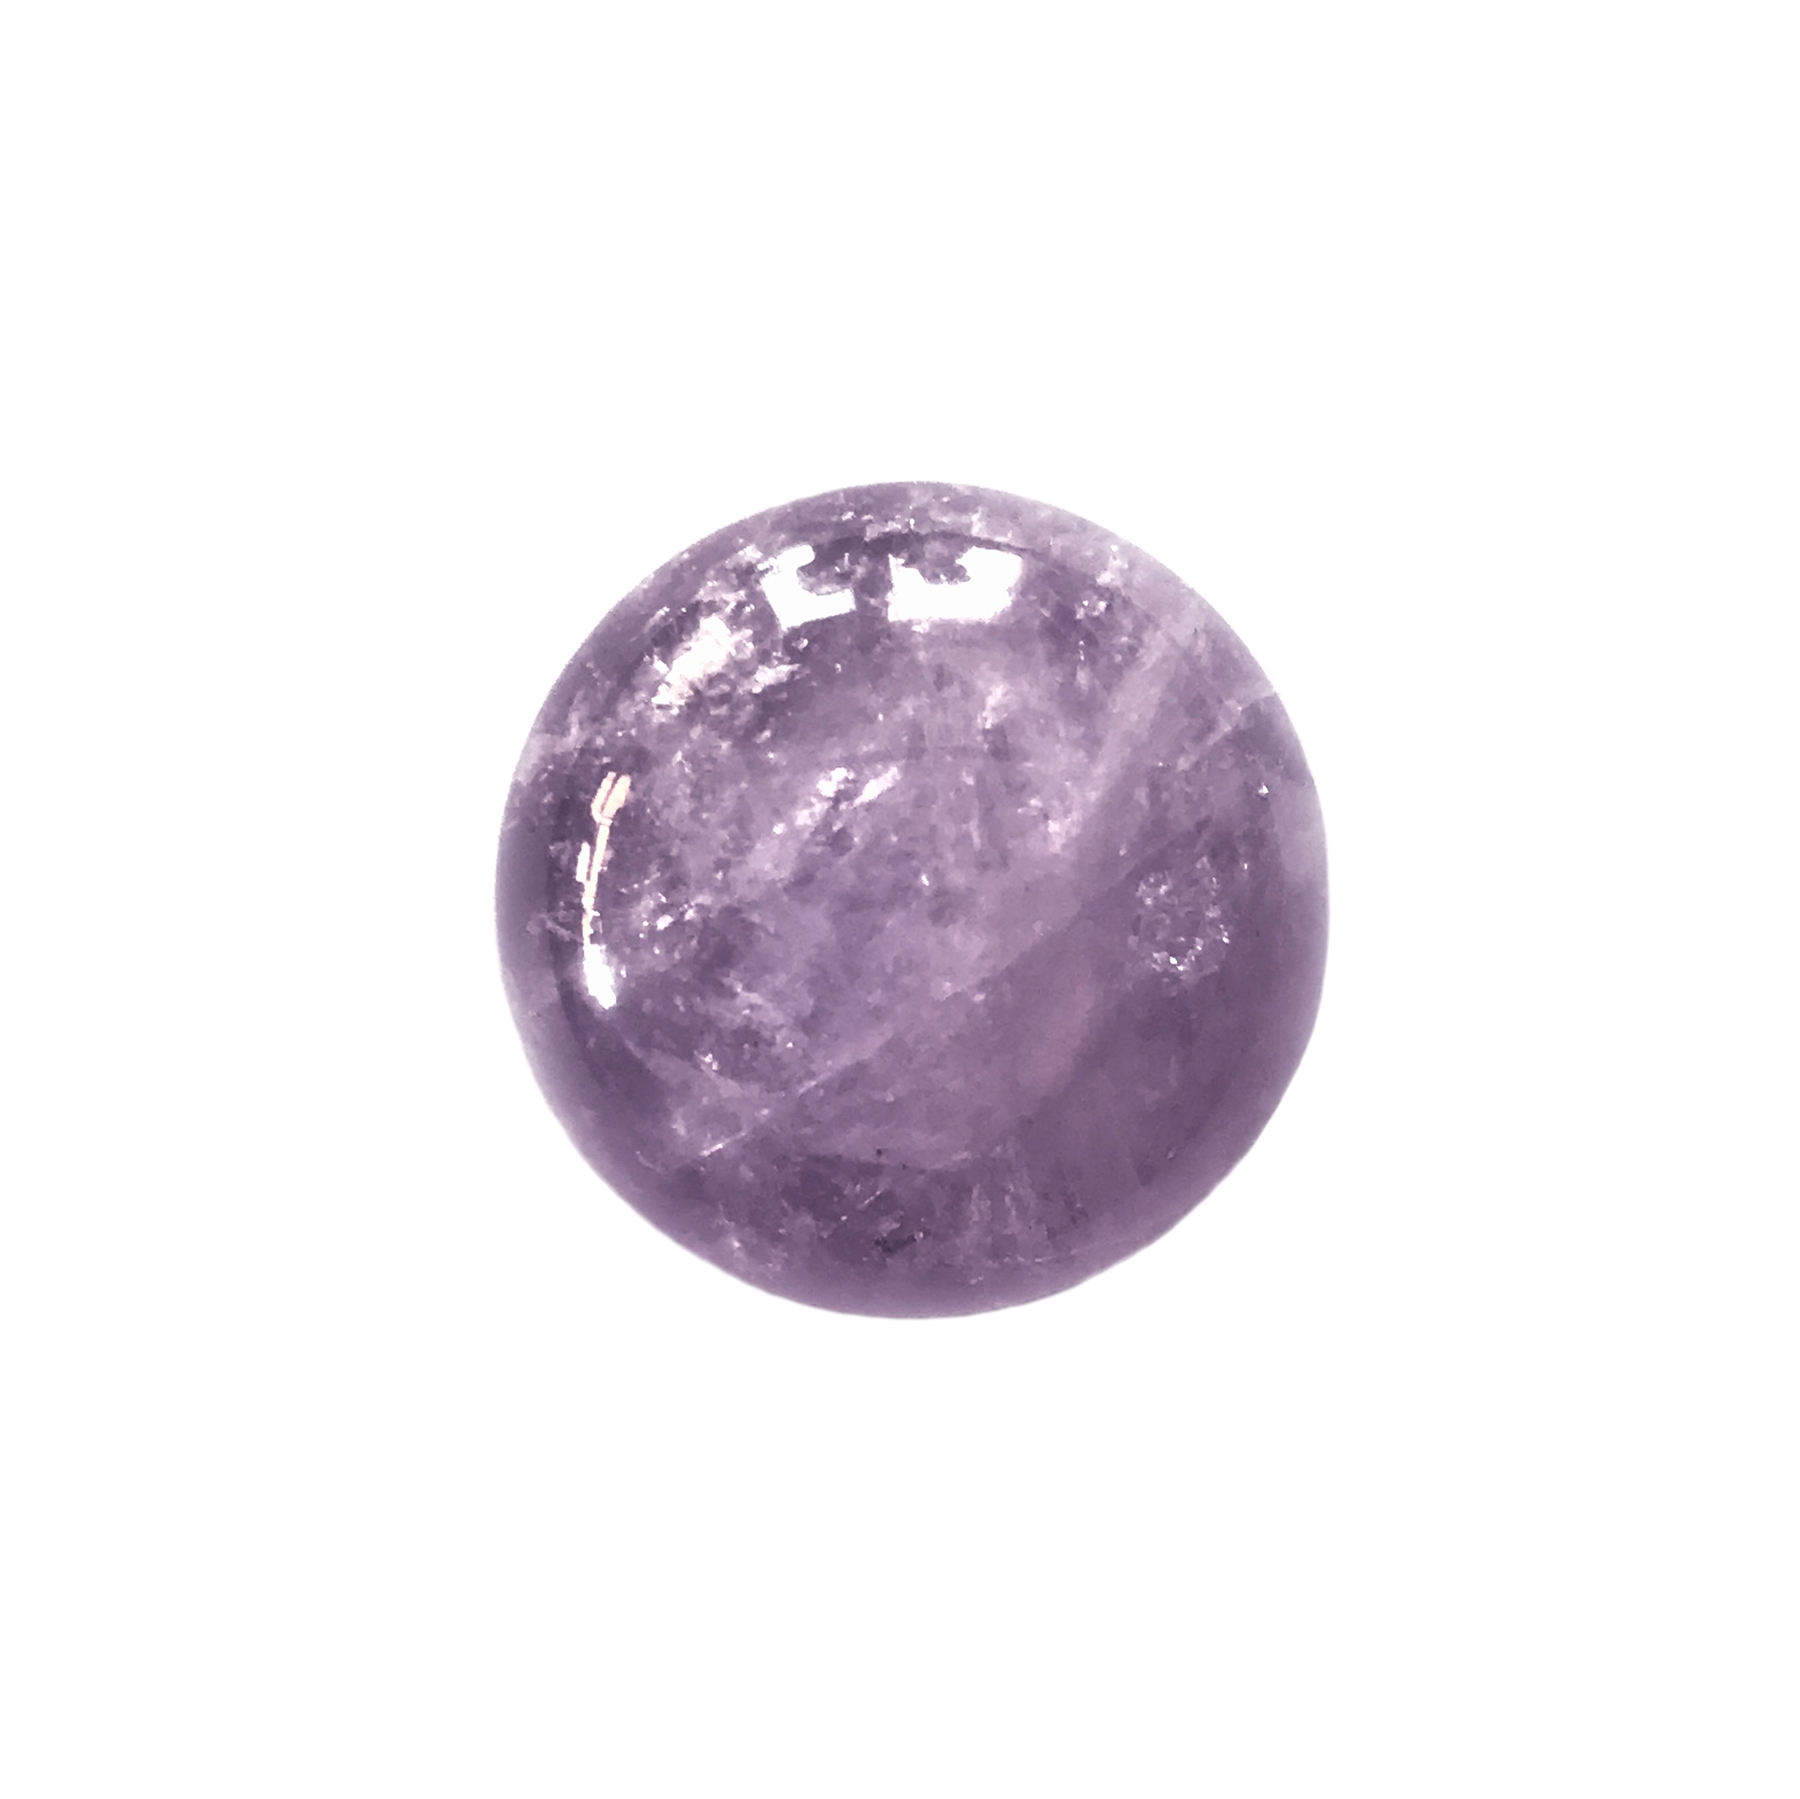 cape amethyst stone, semi precious stone, amethyst, pale purple, focal stone, 18mm, cabochon, natural stone, cape amethyst, white, purple stone, semi stone, transparent, round, glossy shine, stone, us made, B'sue Boutiques, jewelry stone, MSSP55